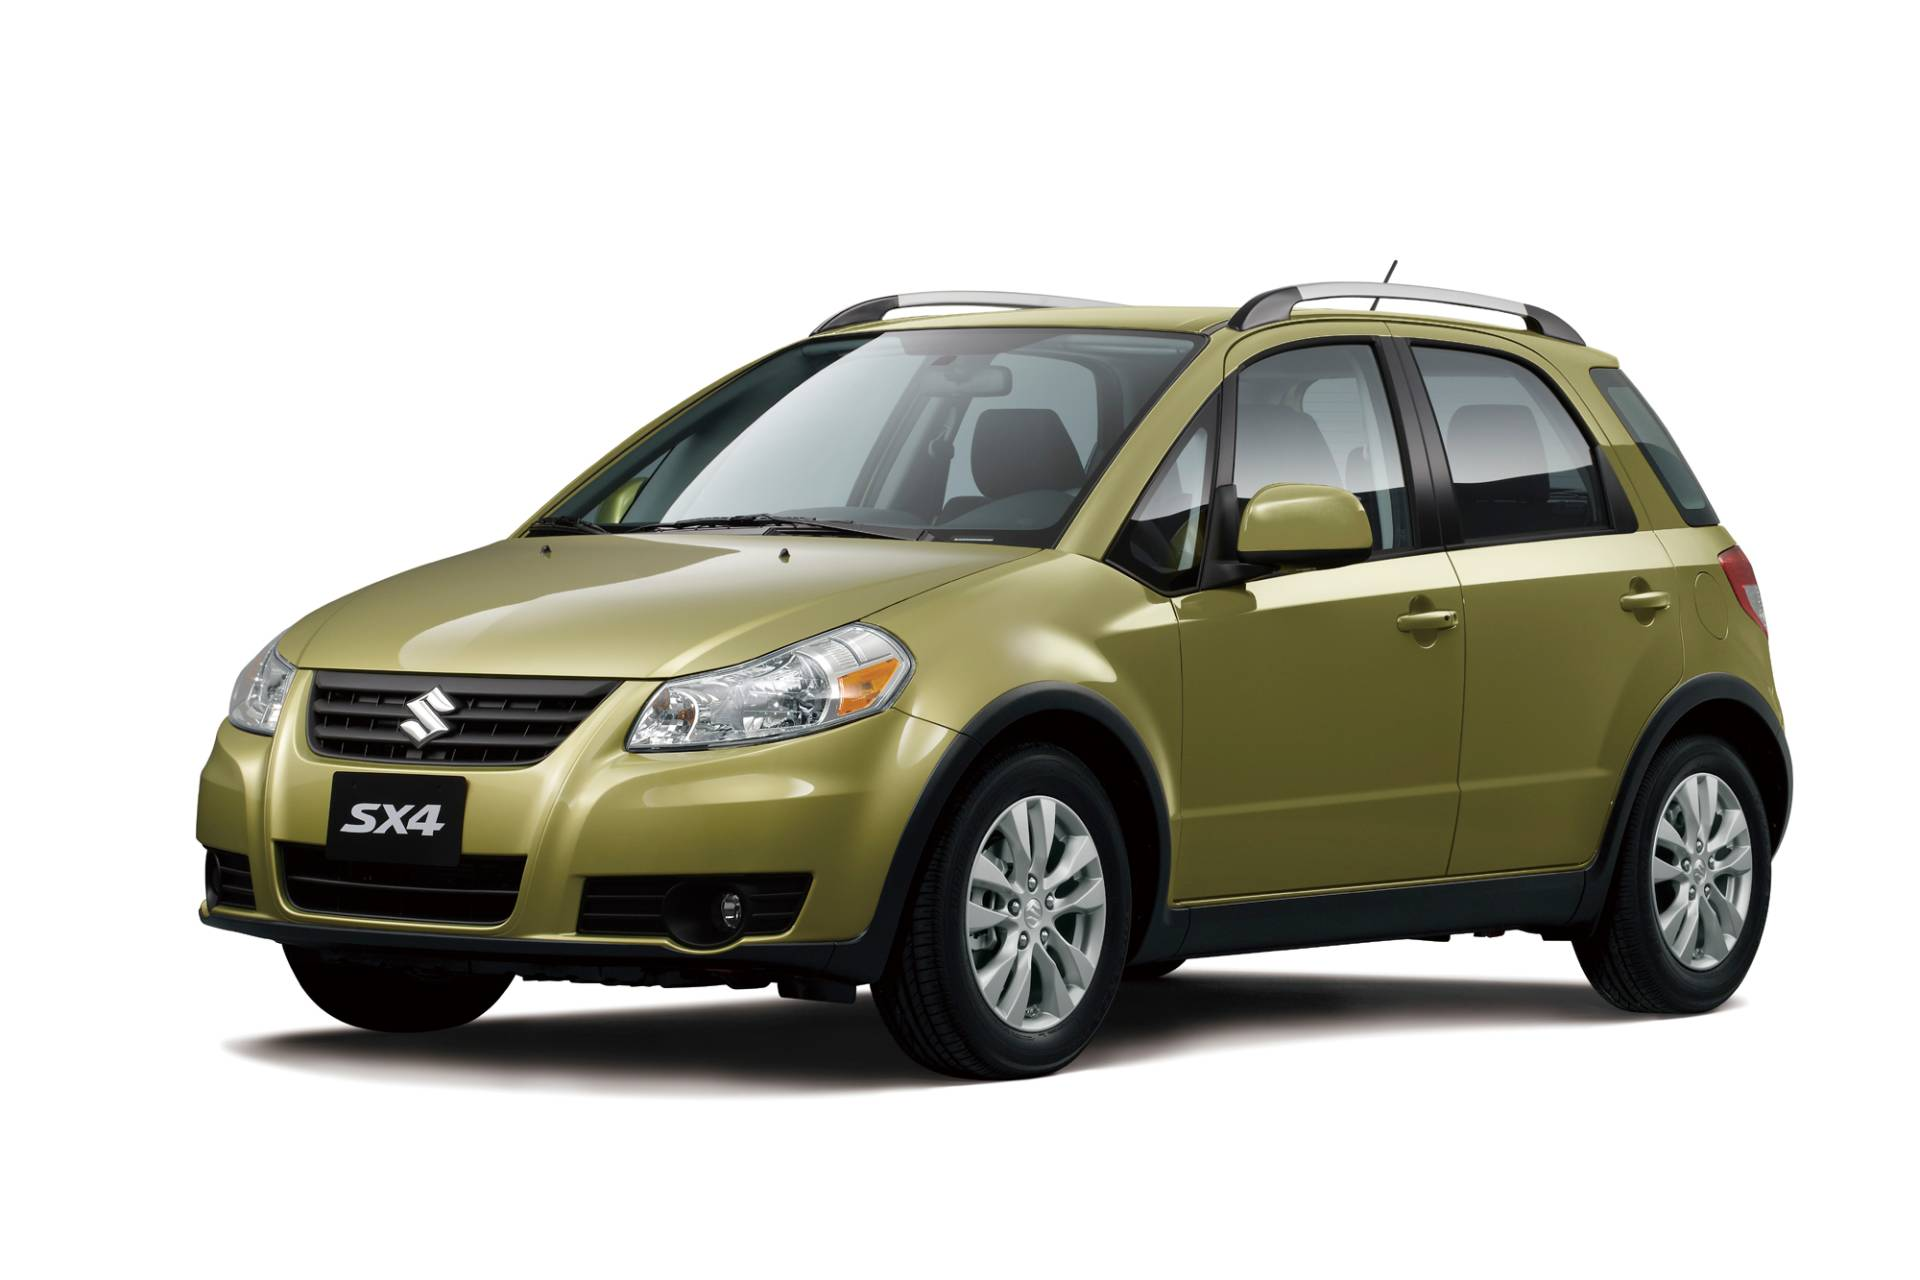 2013 suzuki sx4 crossover technical specifications and data engine dimensions and mechanical. Black Bedroom Furniture Sets. Home Design Ideas